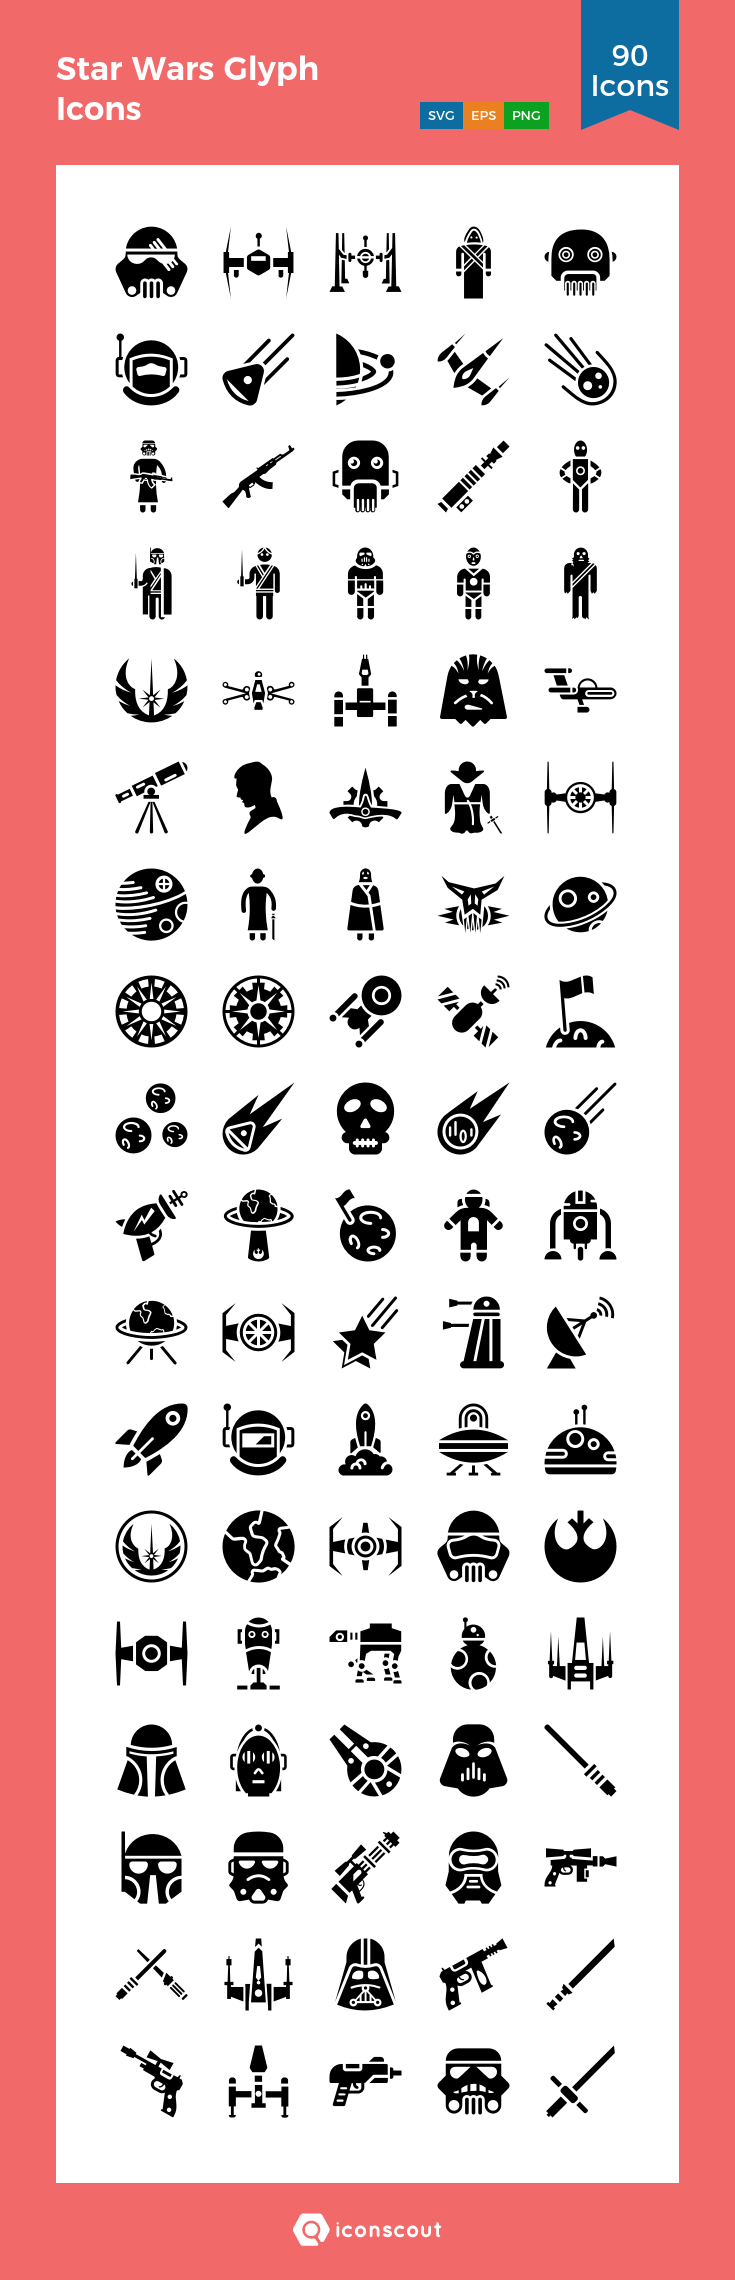 Star Wars Glyph Icons Icon Pack 90 Solid Icons Glyph